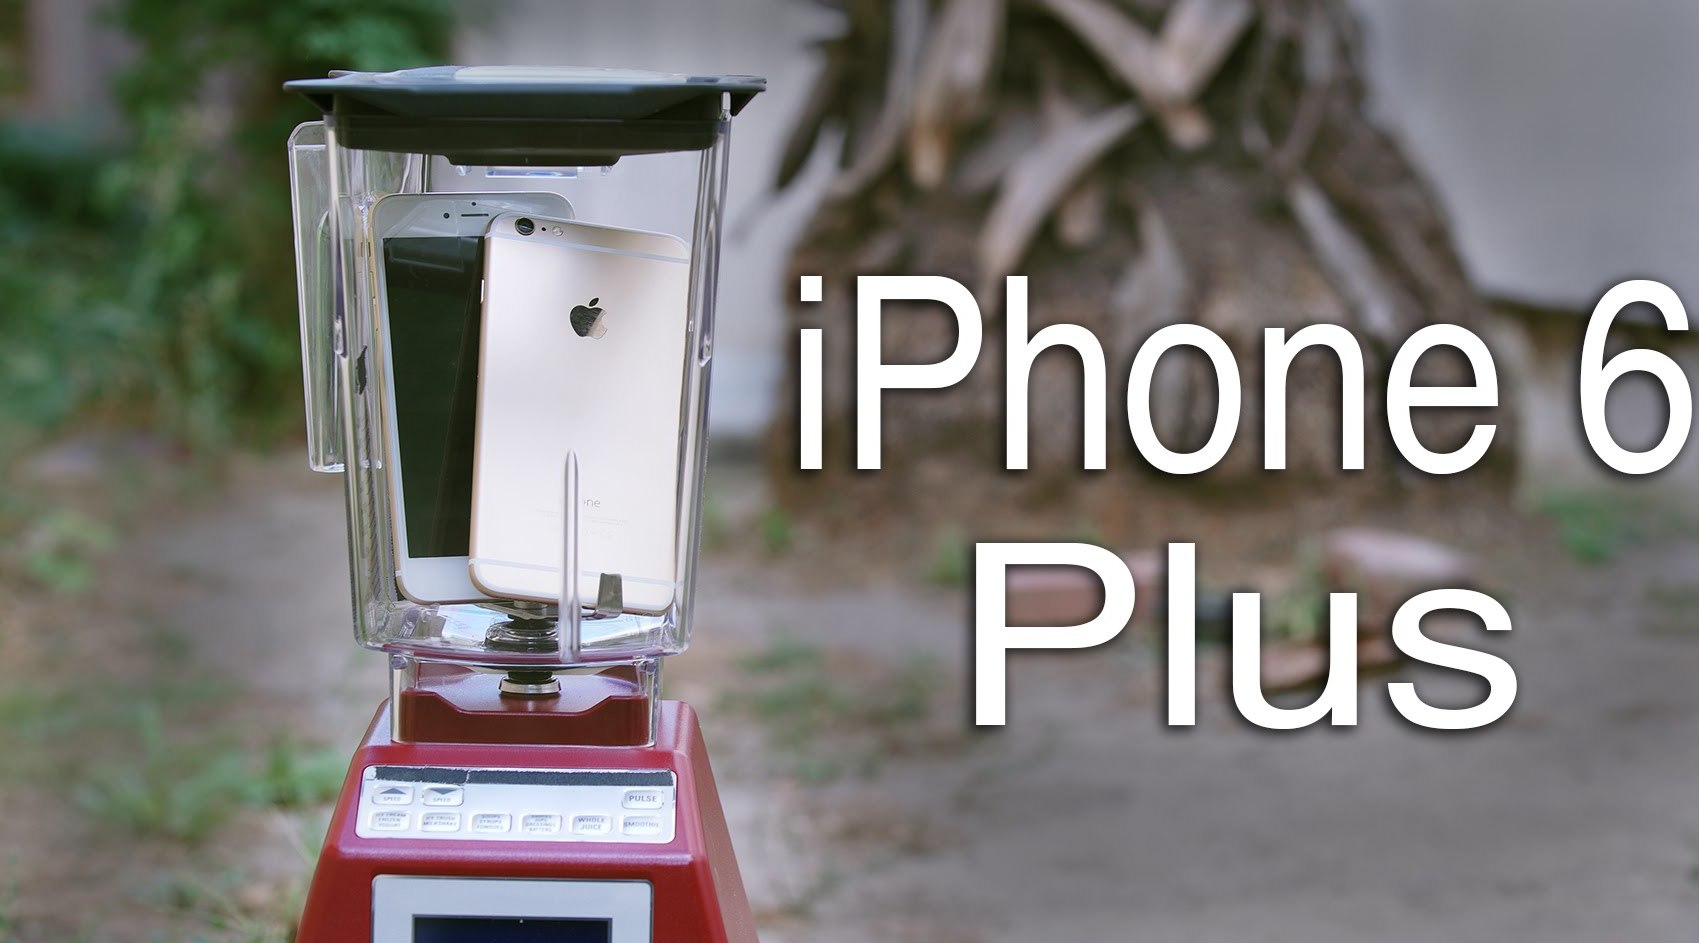 iPhone 6 Plus – Will It Blend?